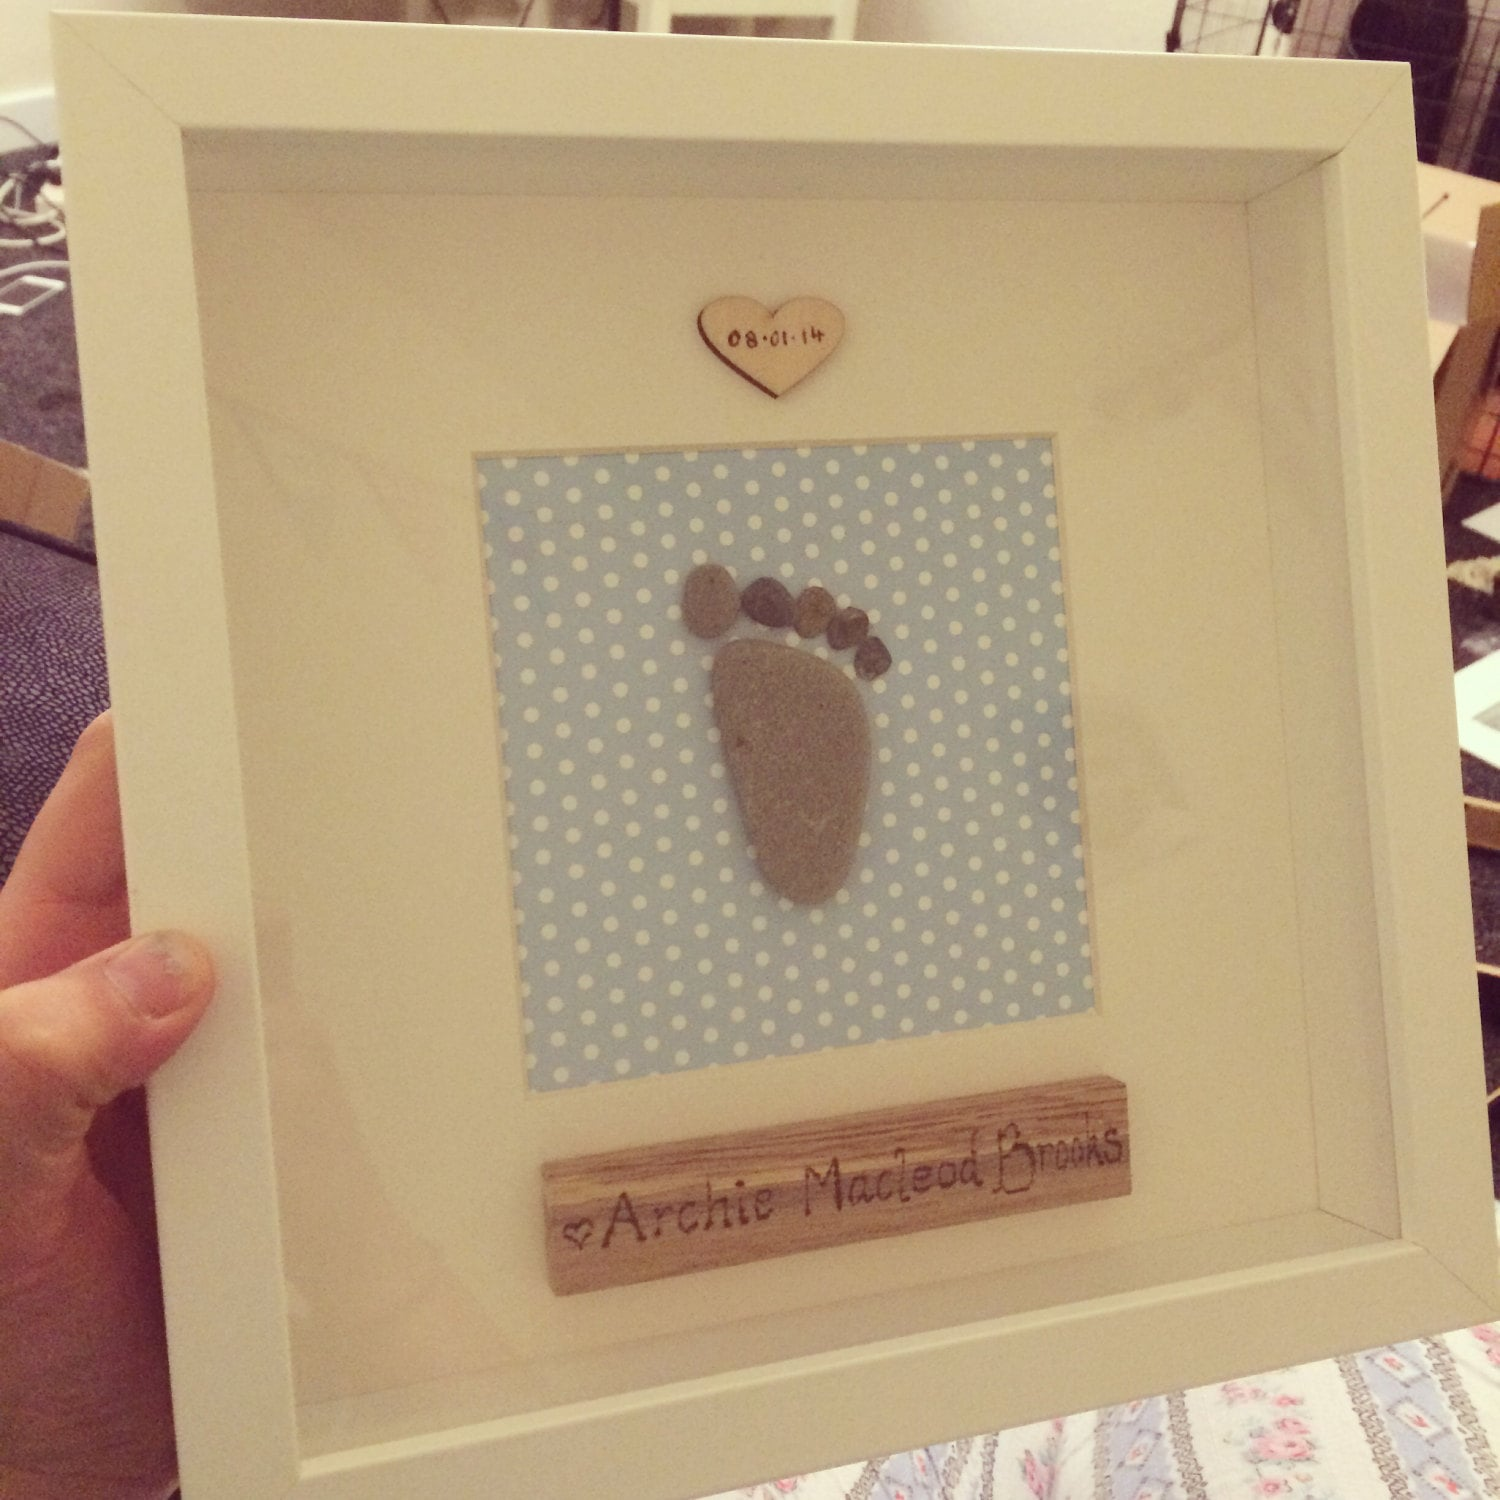 Pebble art personalised baby feet picture framed.